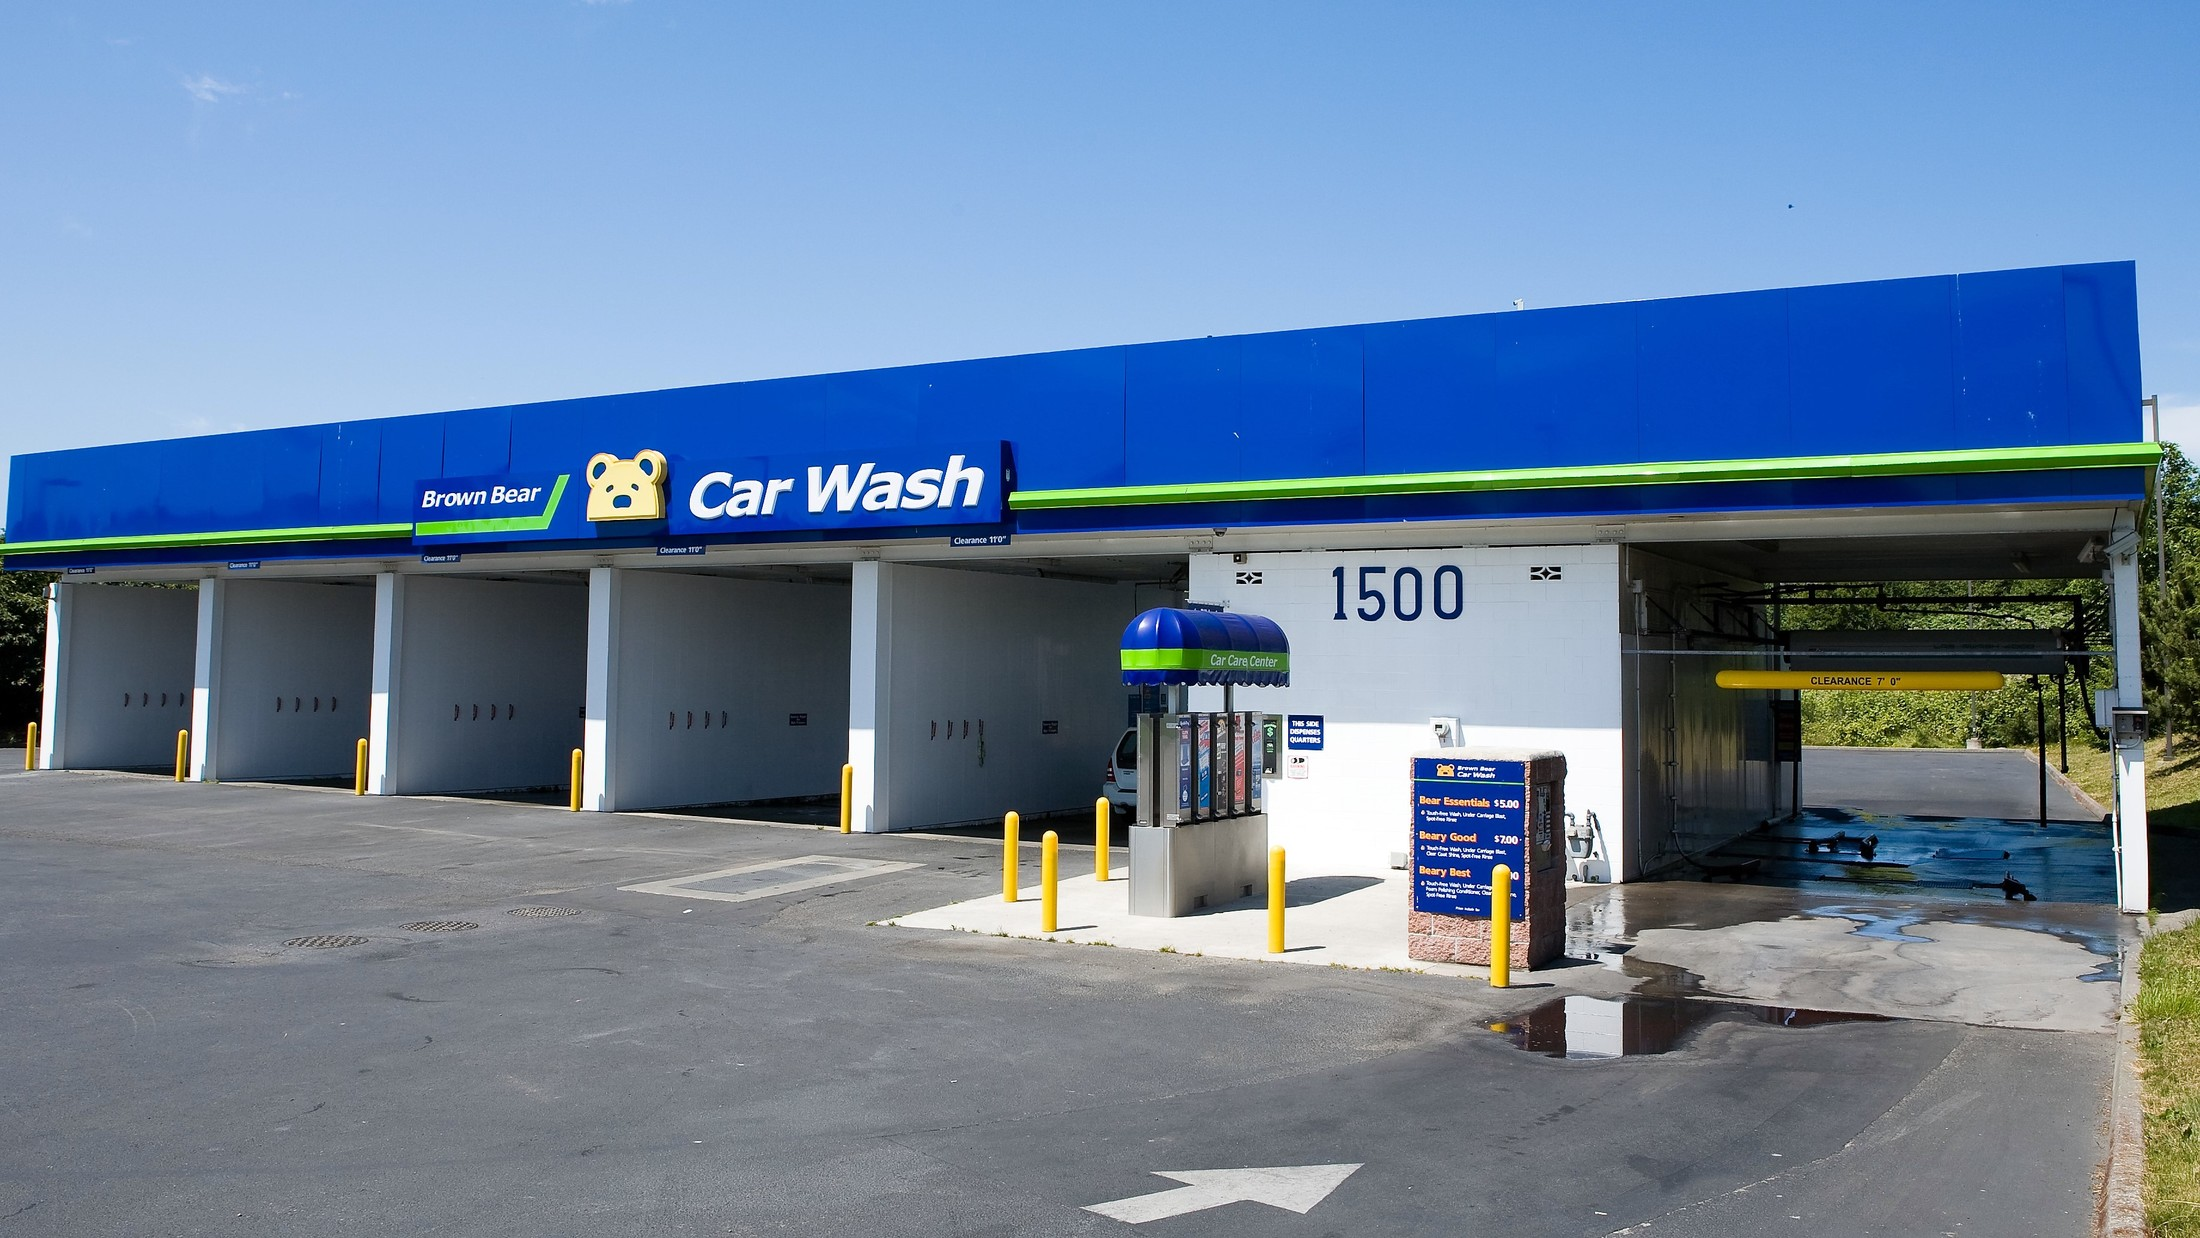 Touchless car wash brown bear car wash toggle navigation logo locations services all services tunnel car wash self solutioingenieria Images